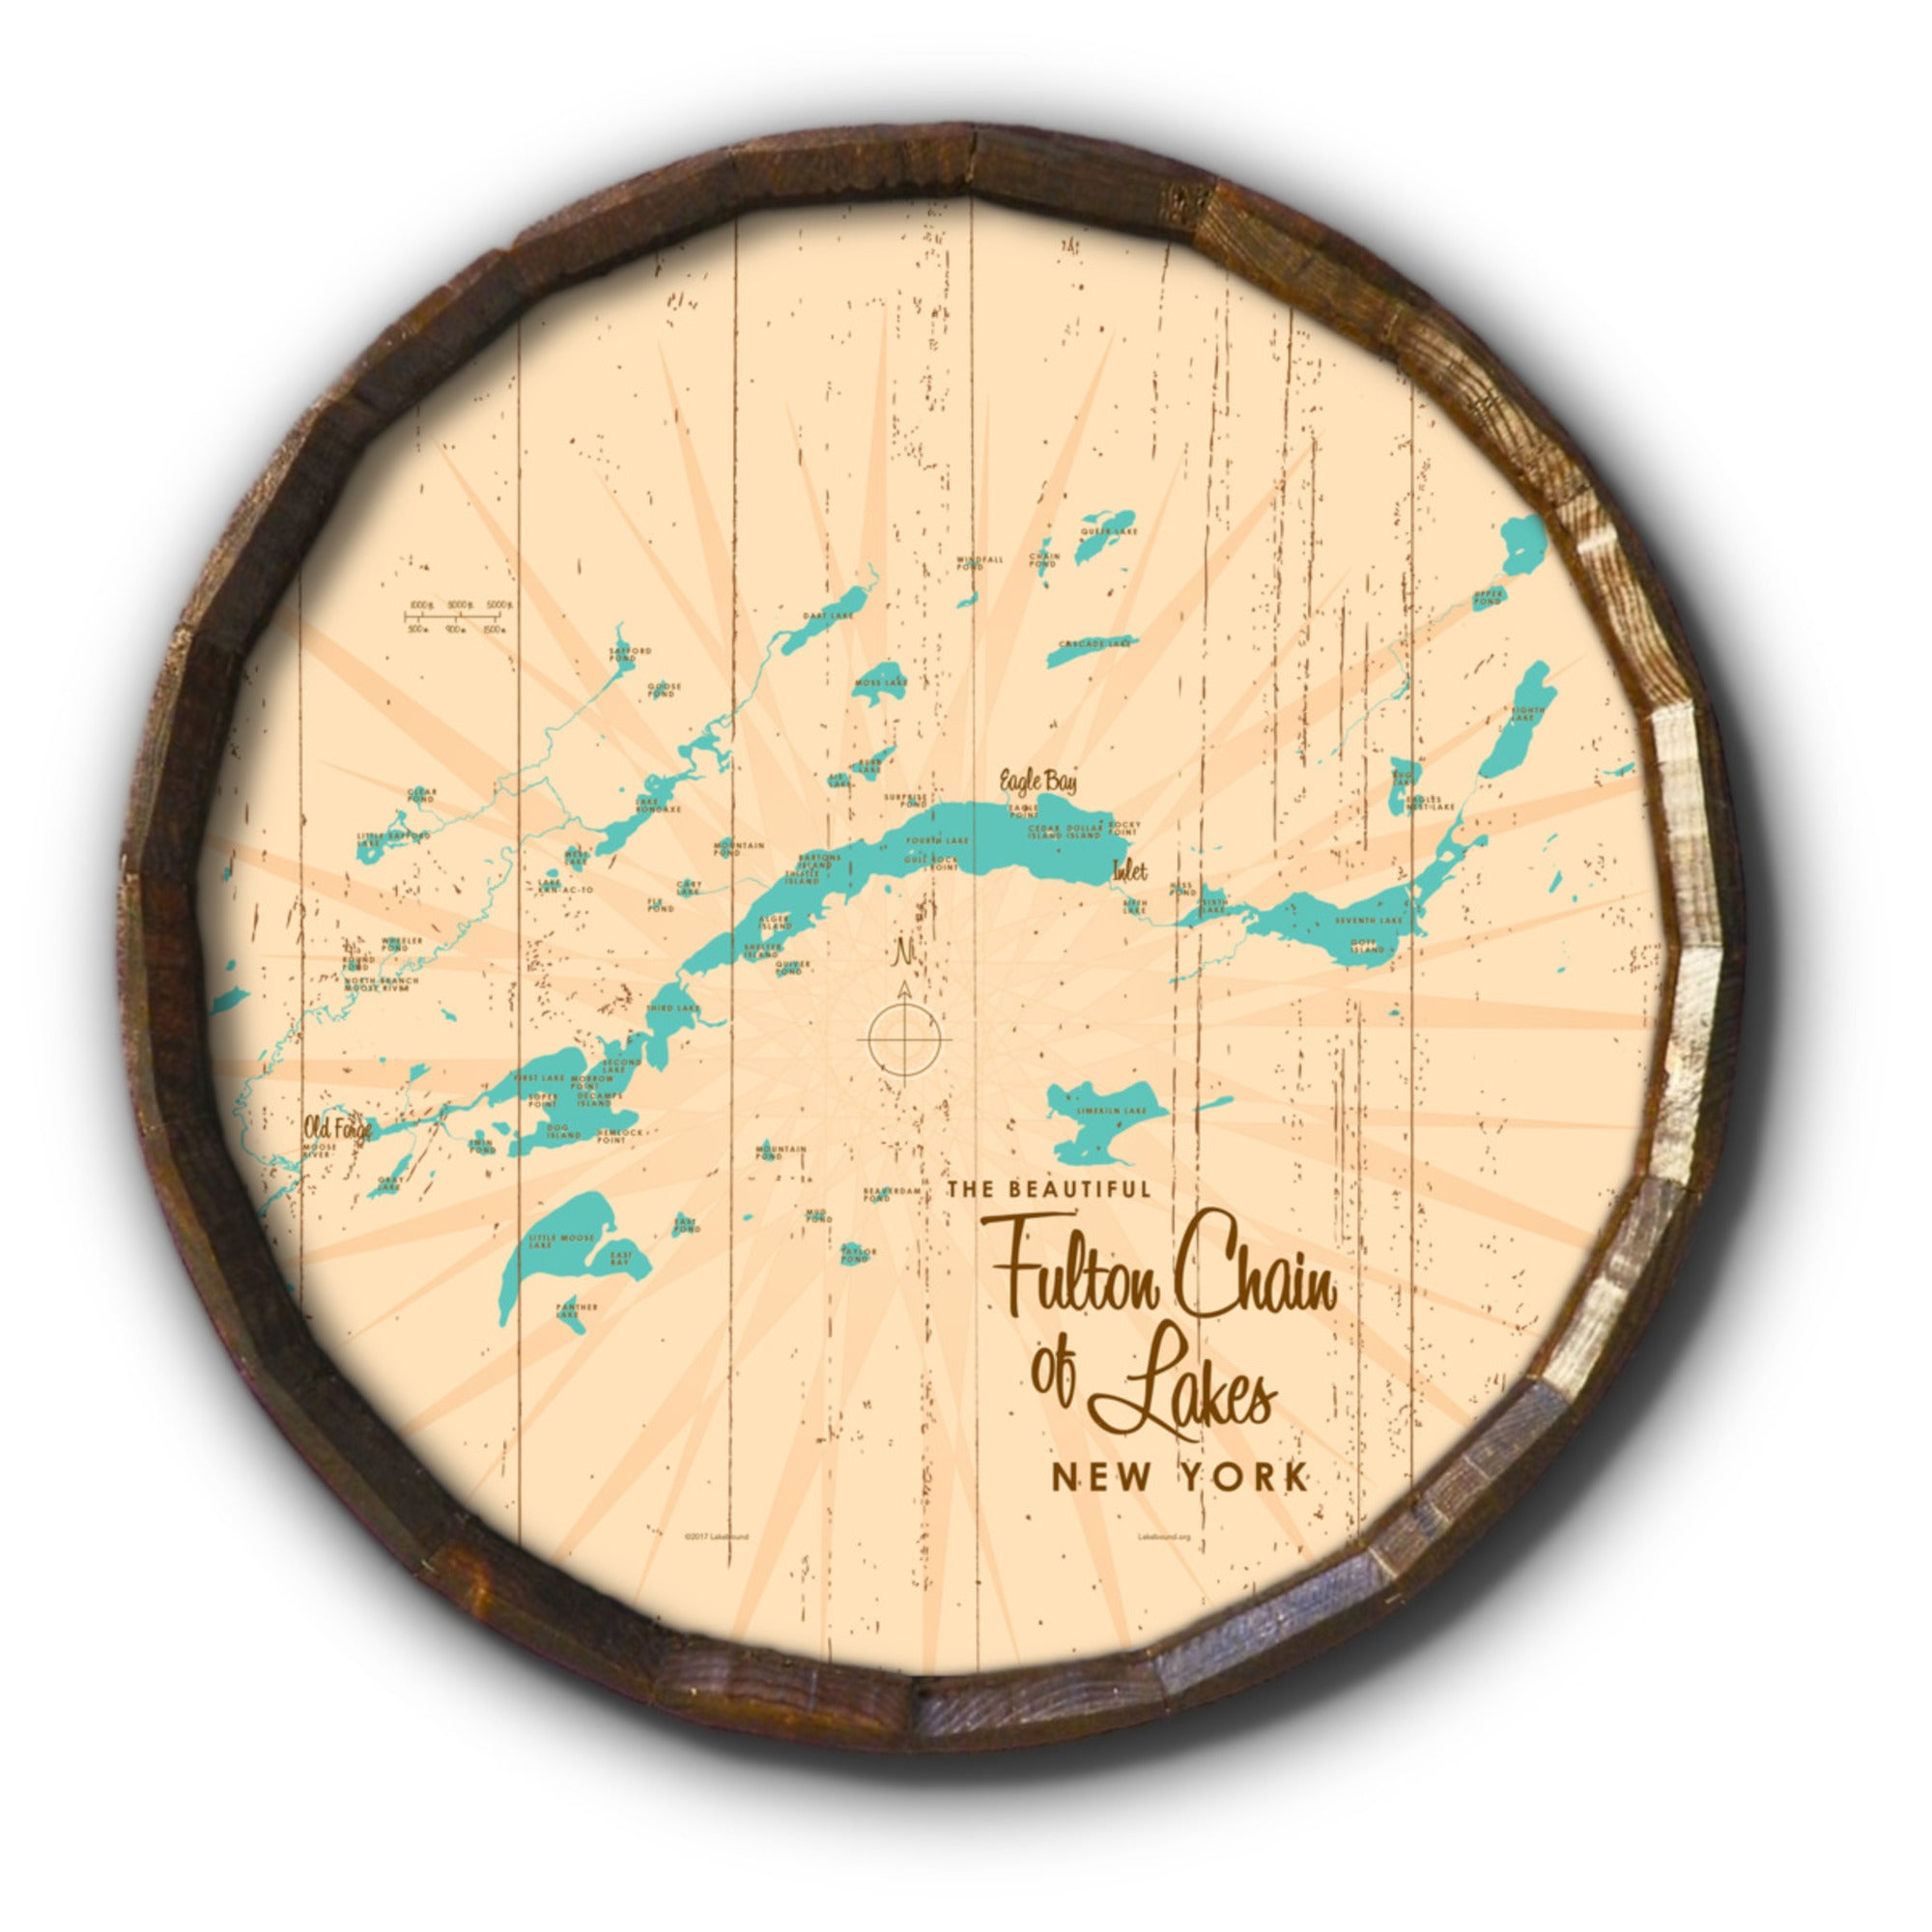 Fulton Chain Lakes New York, Rustic Barrel End Map Art